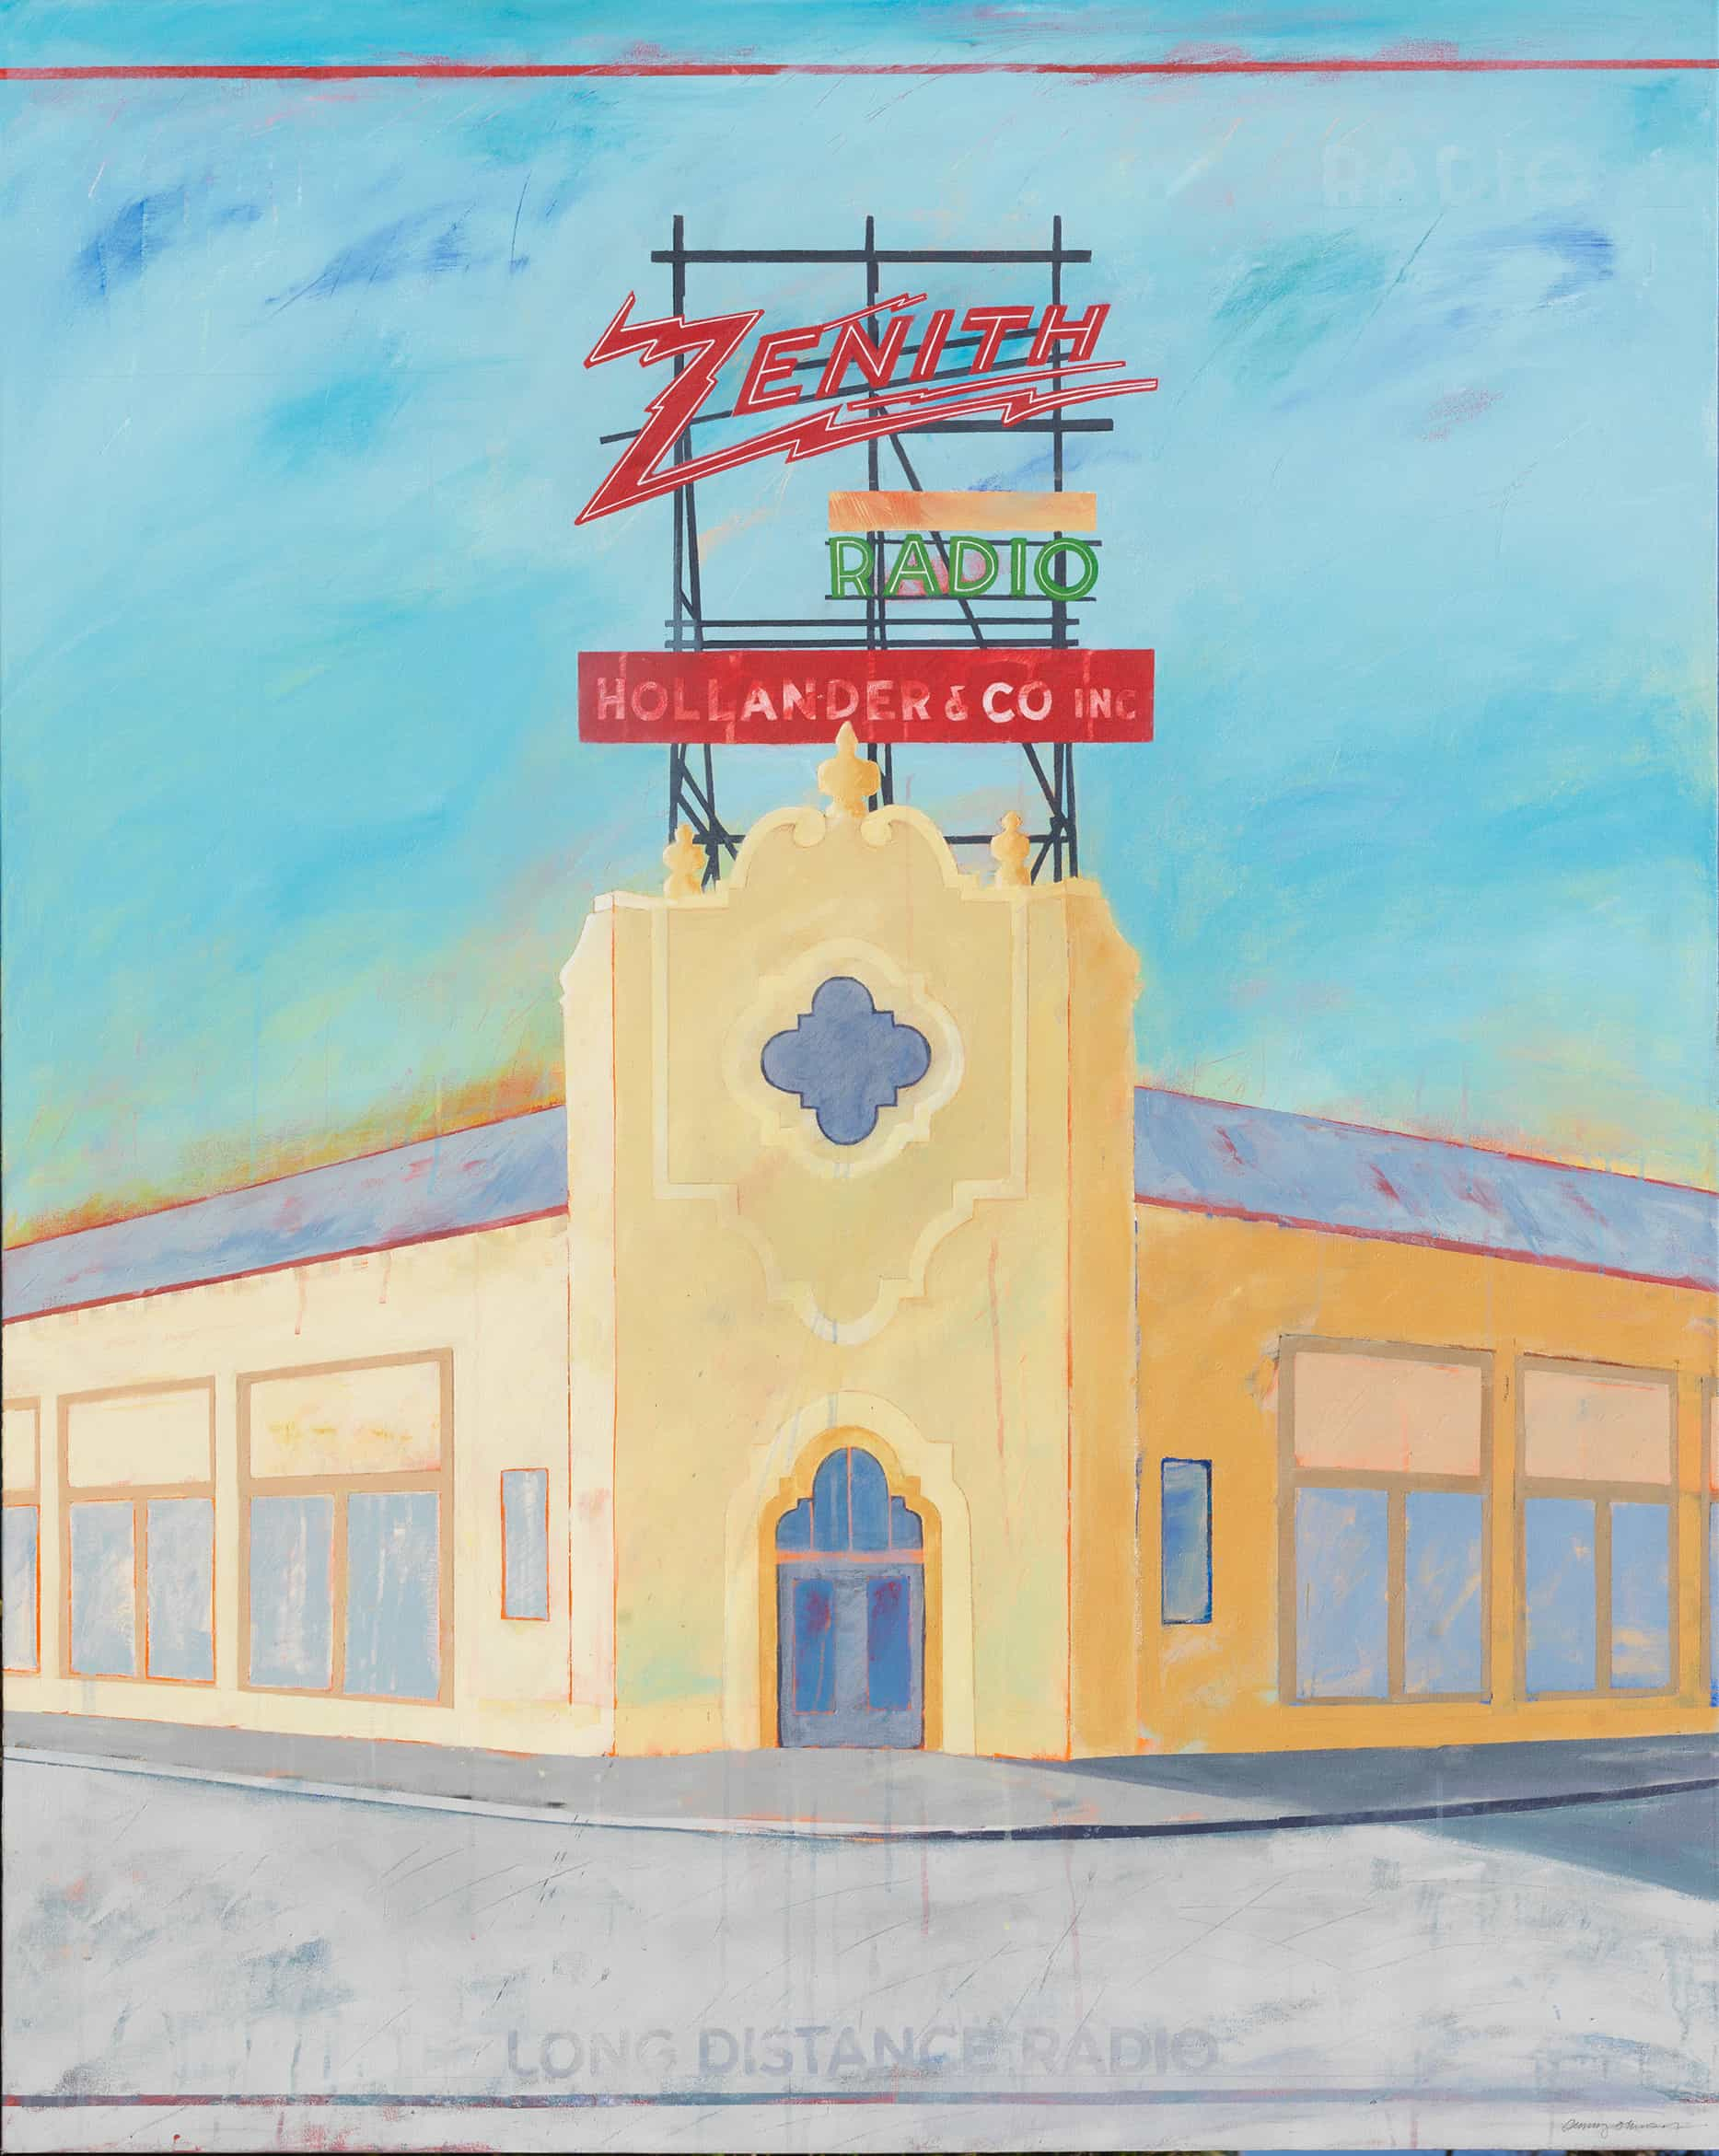 Zenith Radio - Iconic Sign Painting by Dennis Johnson